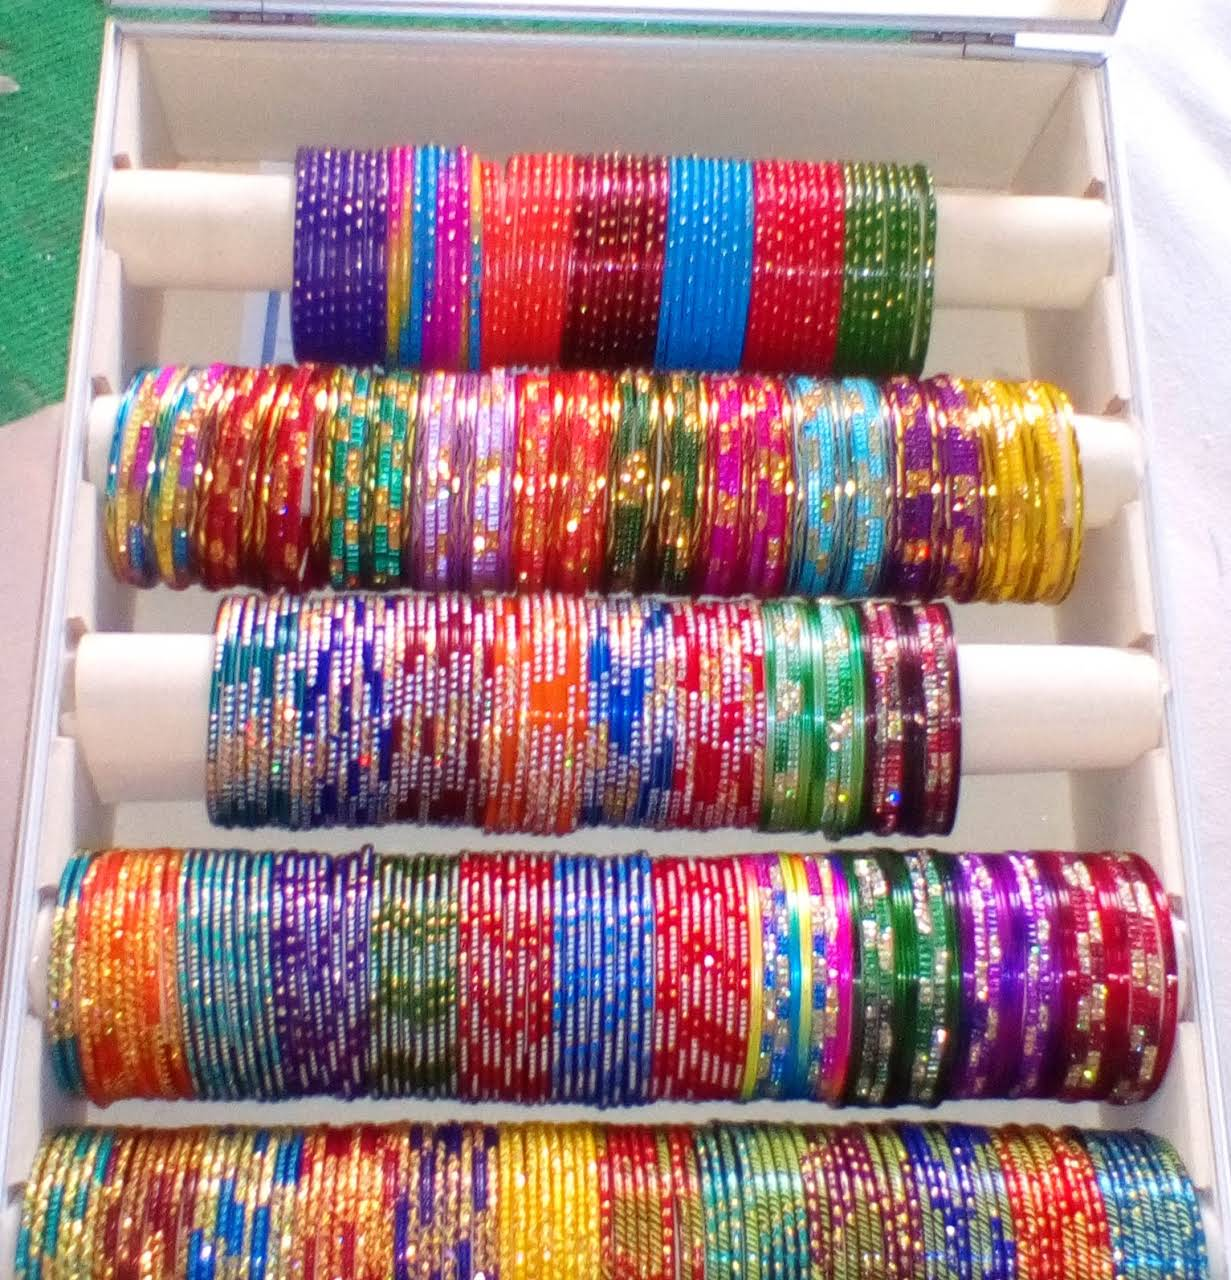 wh shop bangle photos b in india vvinod vinod bangalore by flickr every colors bangles veera of